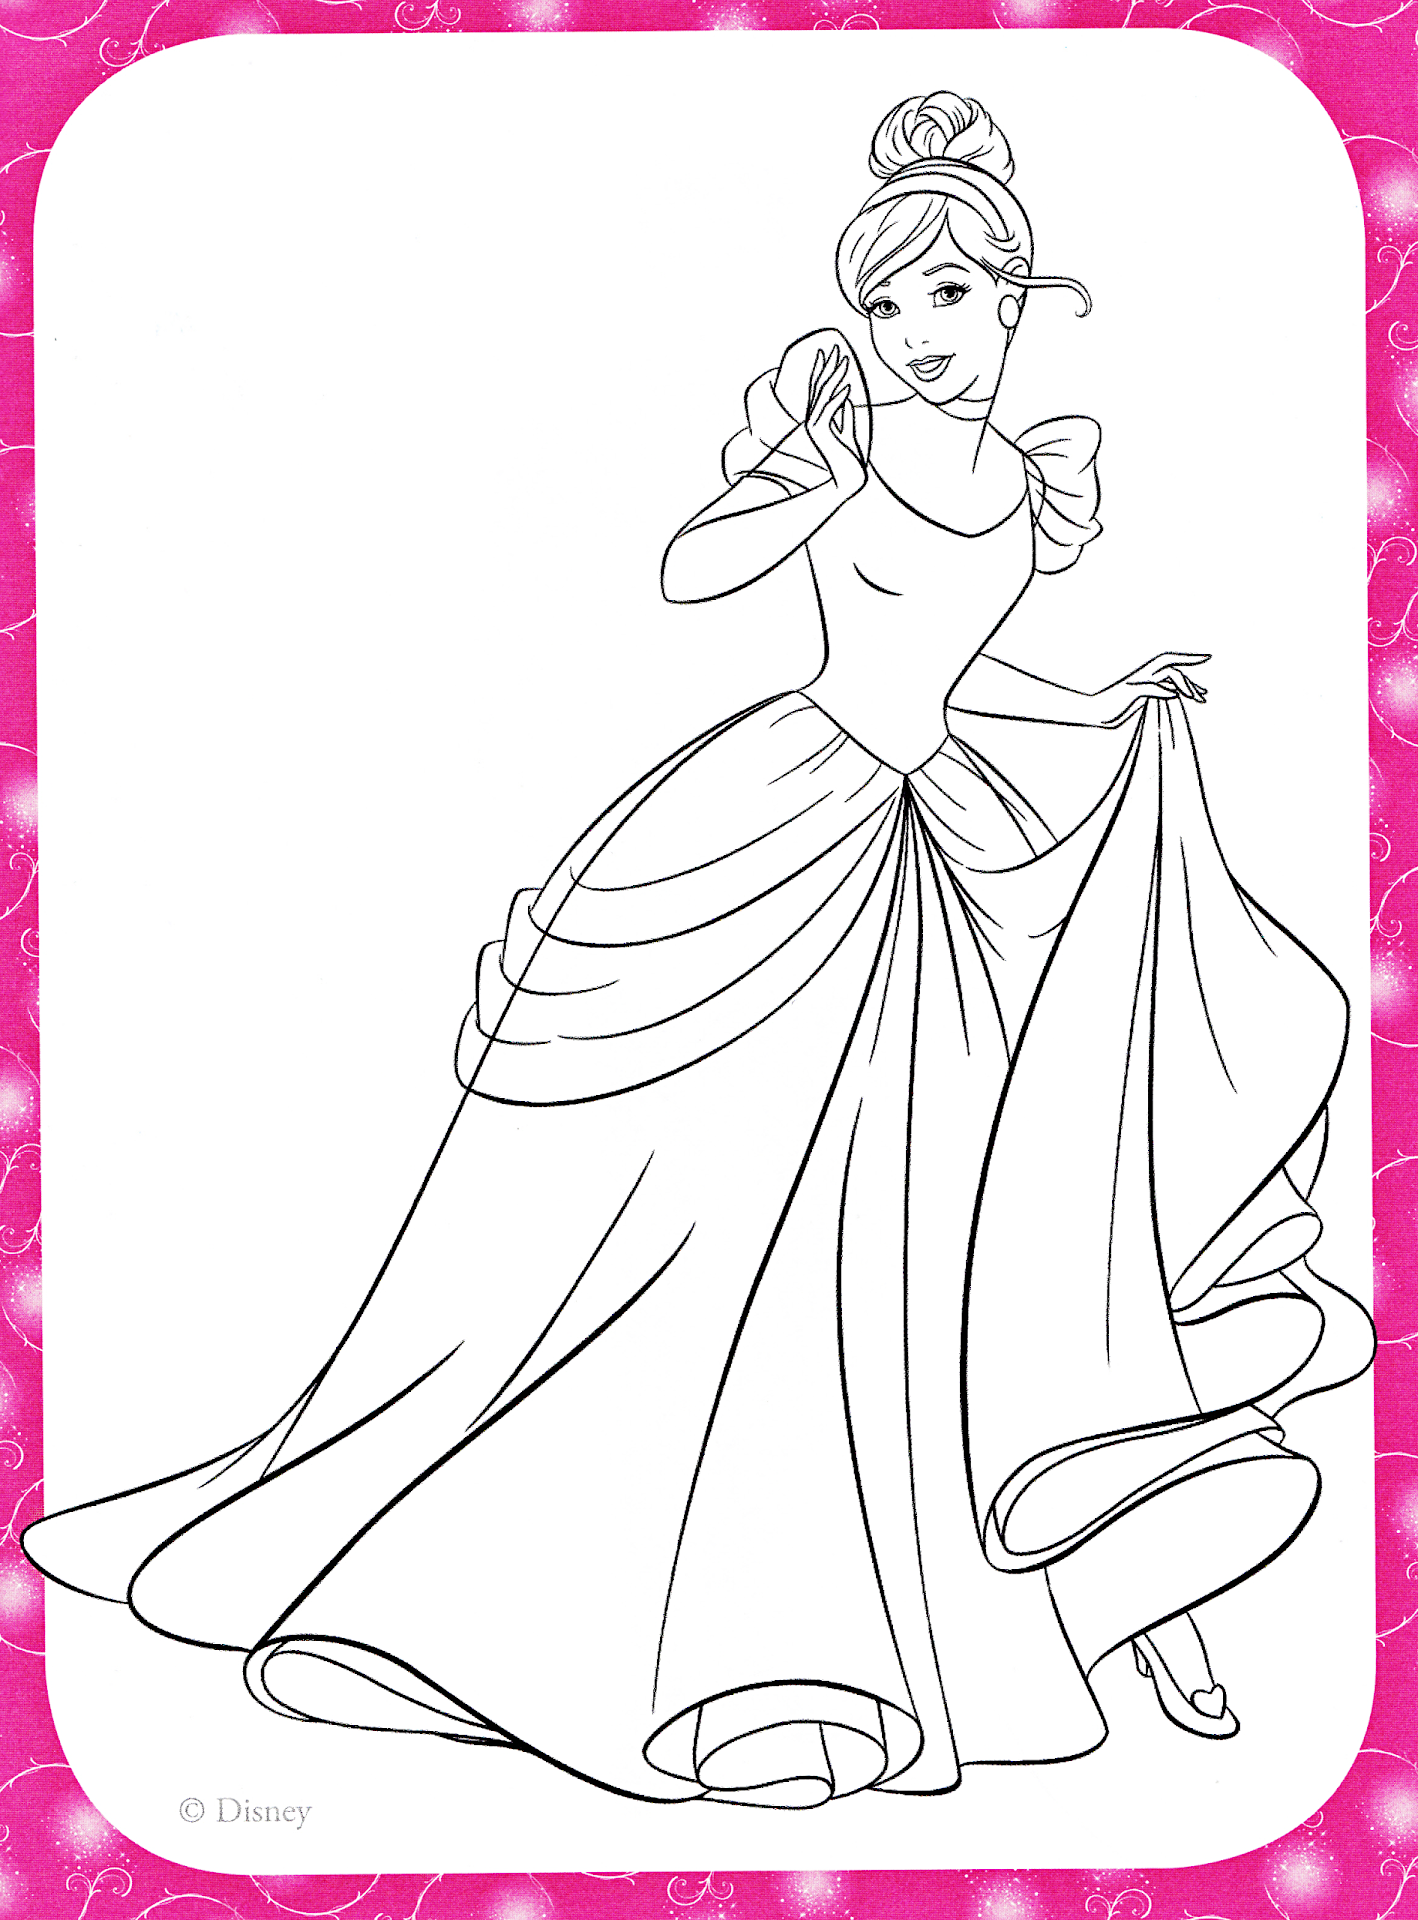 Princess Coloring Pages Spot : Unique disney princess coloring pages cinderella free